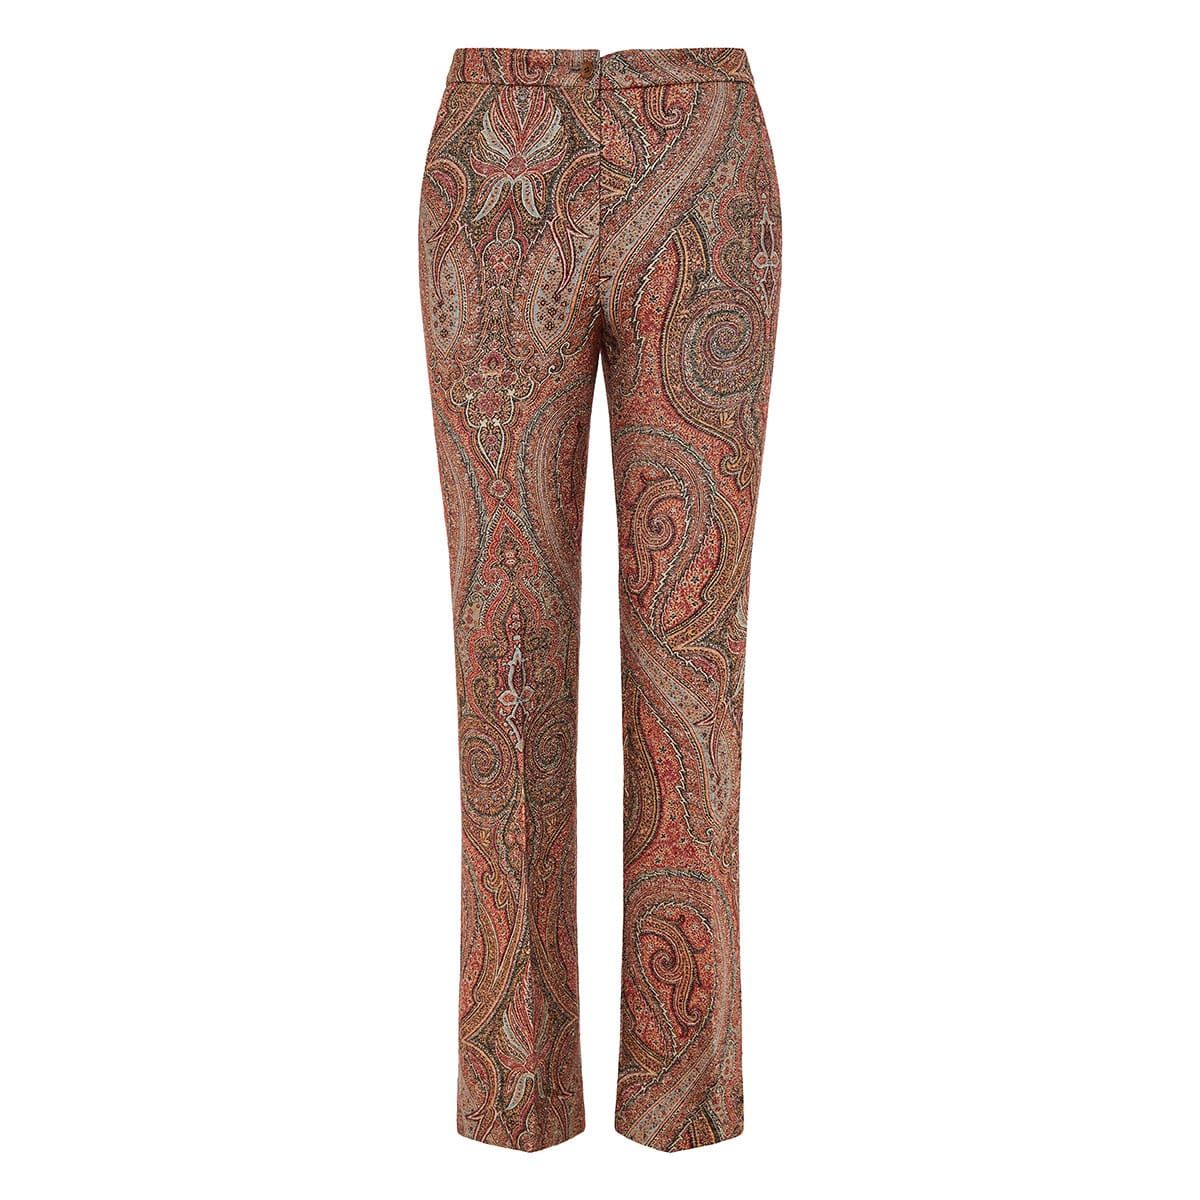 Paisley cropped jacquard trousers